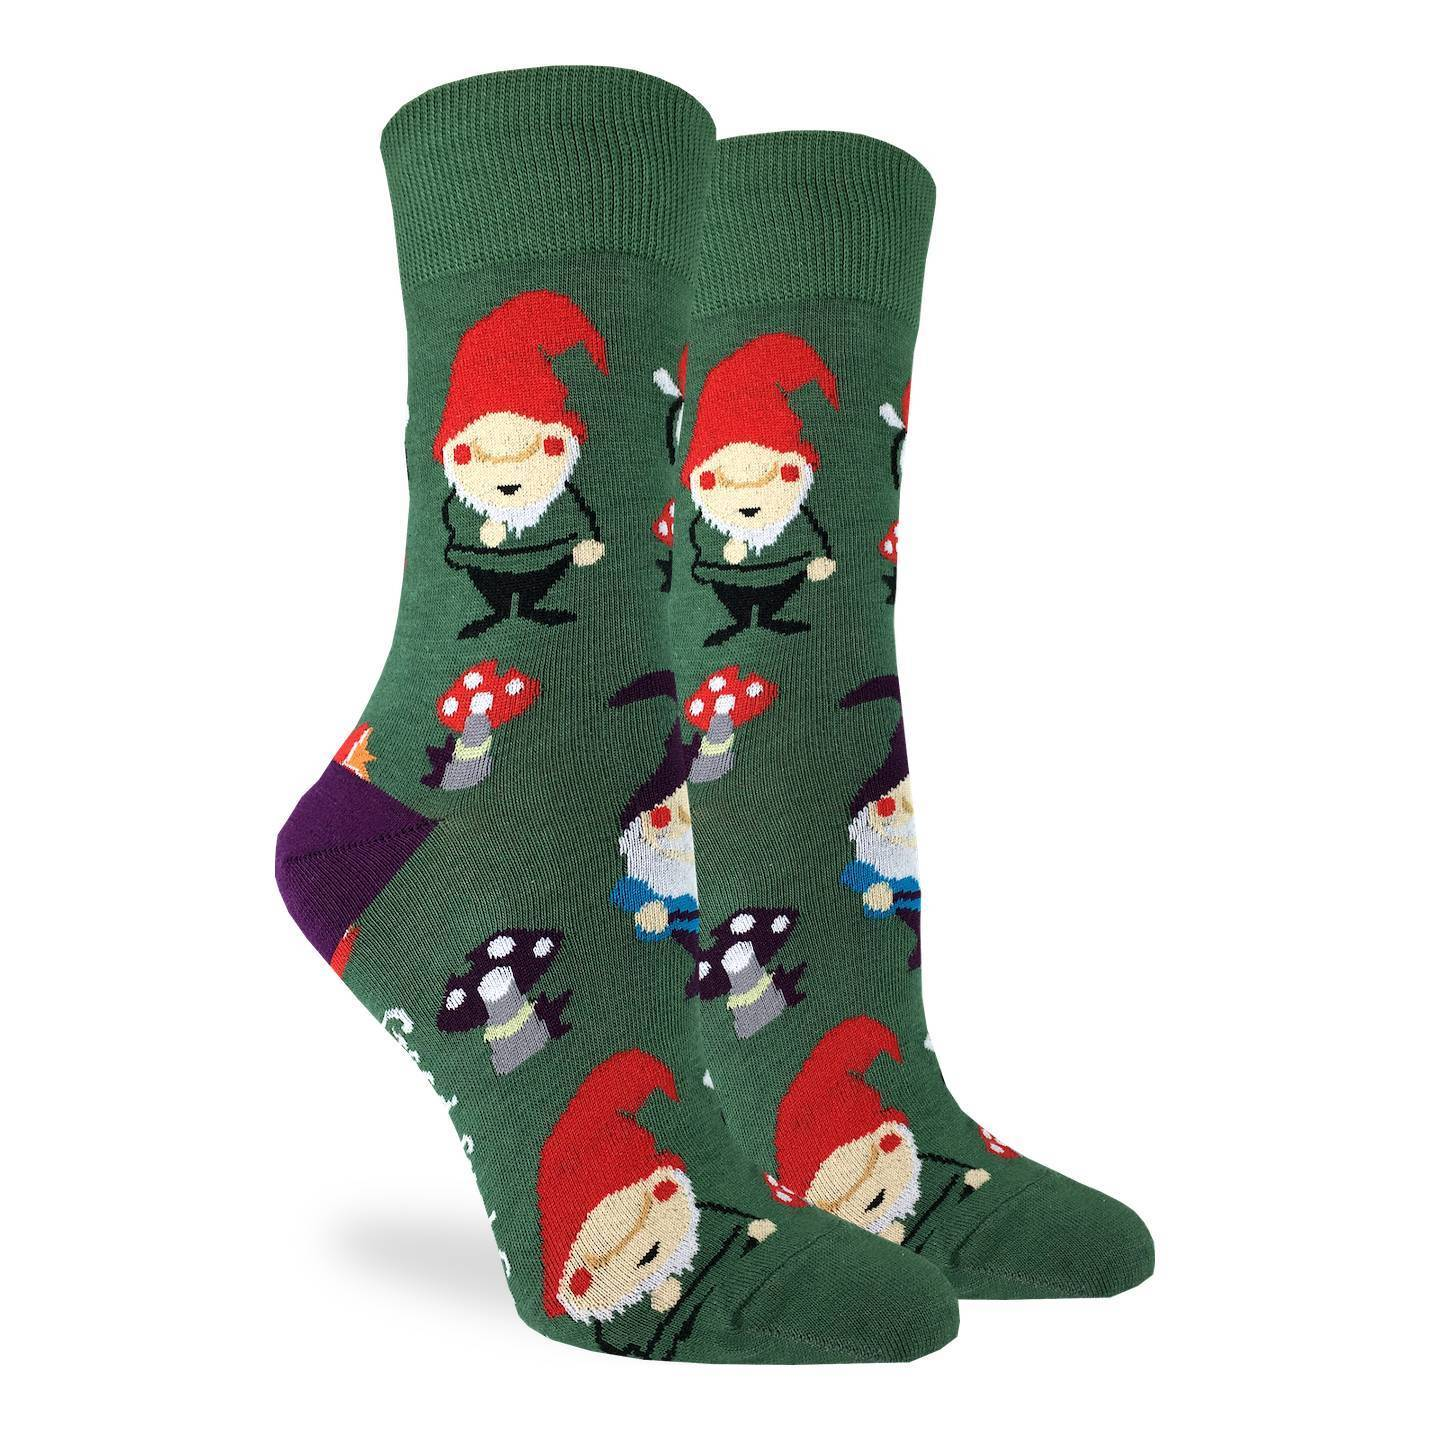 Women's Lawn Gnomes Socks - Good Luck Sock